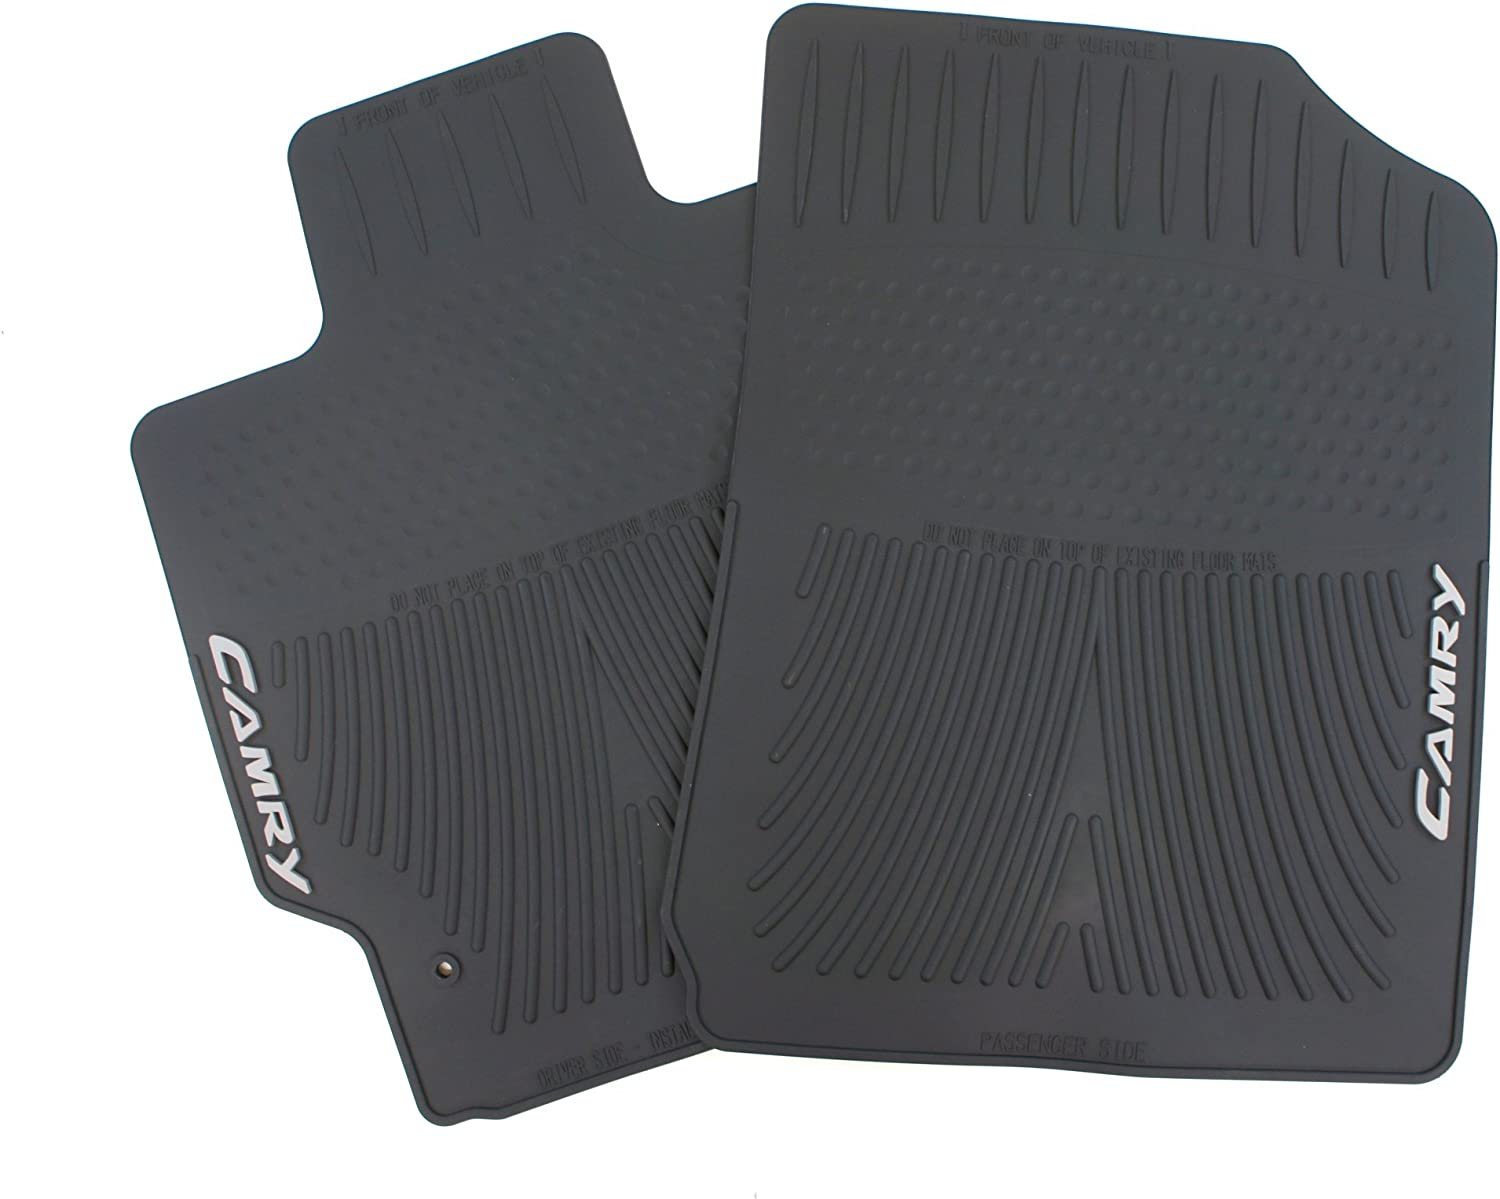 1993 1994 Oldsmobile Cutlass Ciera Coupe//Sedan Pink Driver /& Passenger 1989 1990 1986 1991 1987 GGBAILEY D3017B-F1A-PNK Custom Fit Automotive Carpet Floor Mats for 1984 1992 1988 1985